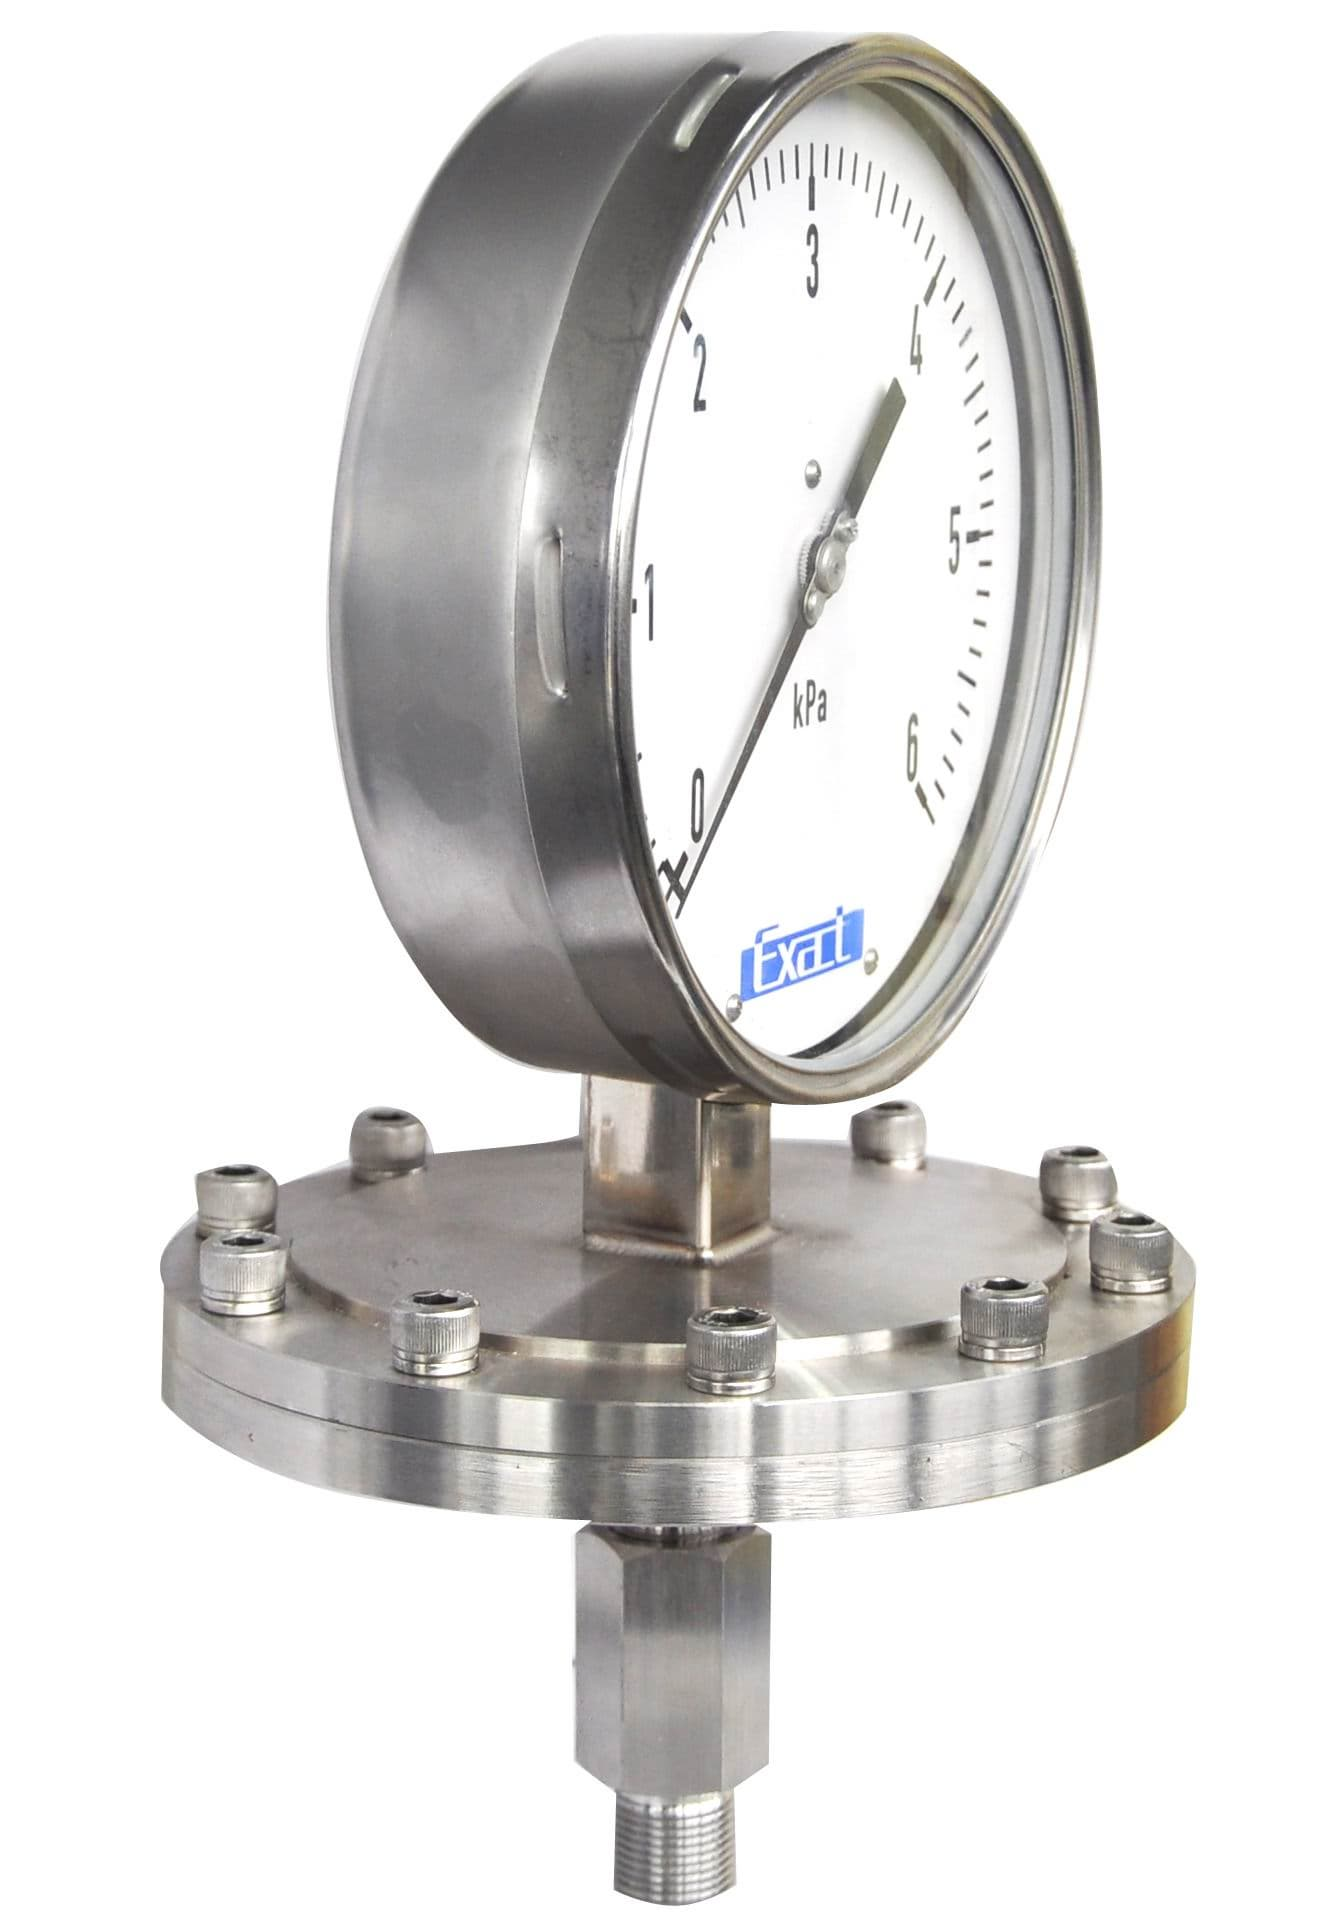 Pressure Measuring Instruments : Diaphram pressure gauge al from exact instrument co ltd